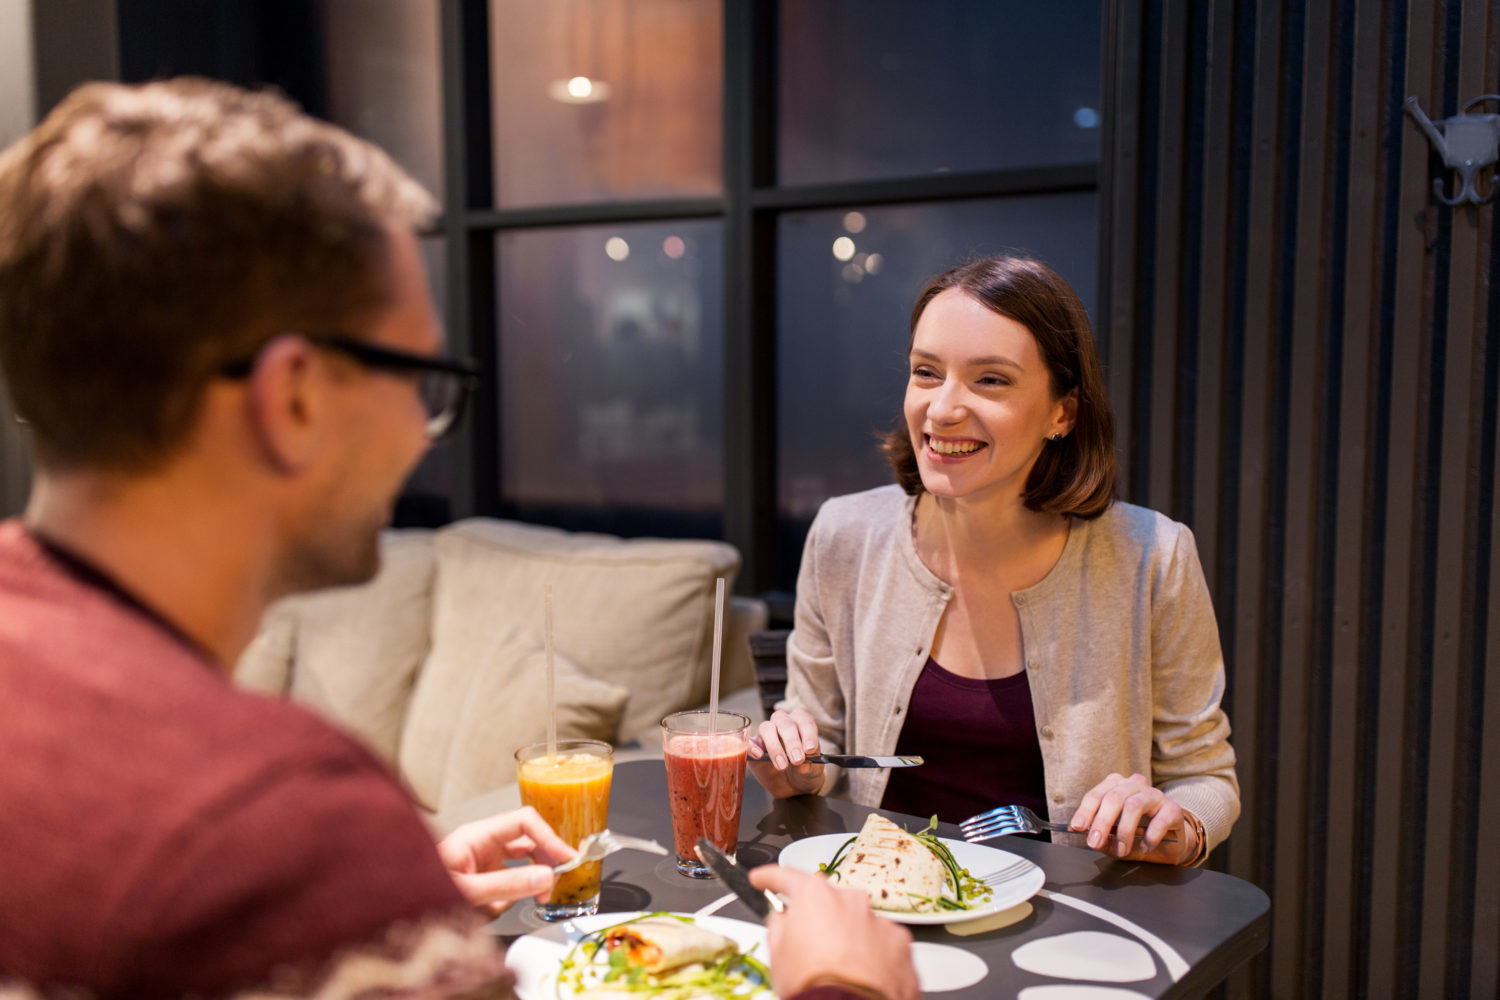 3 Cardinal Rules for Date Night and Why They Matter